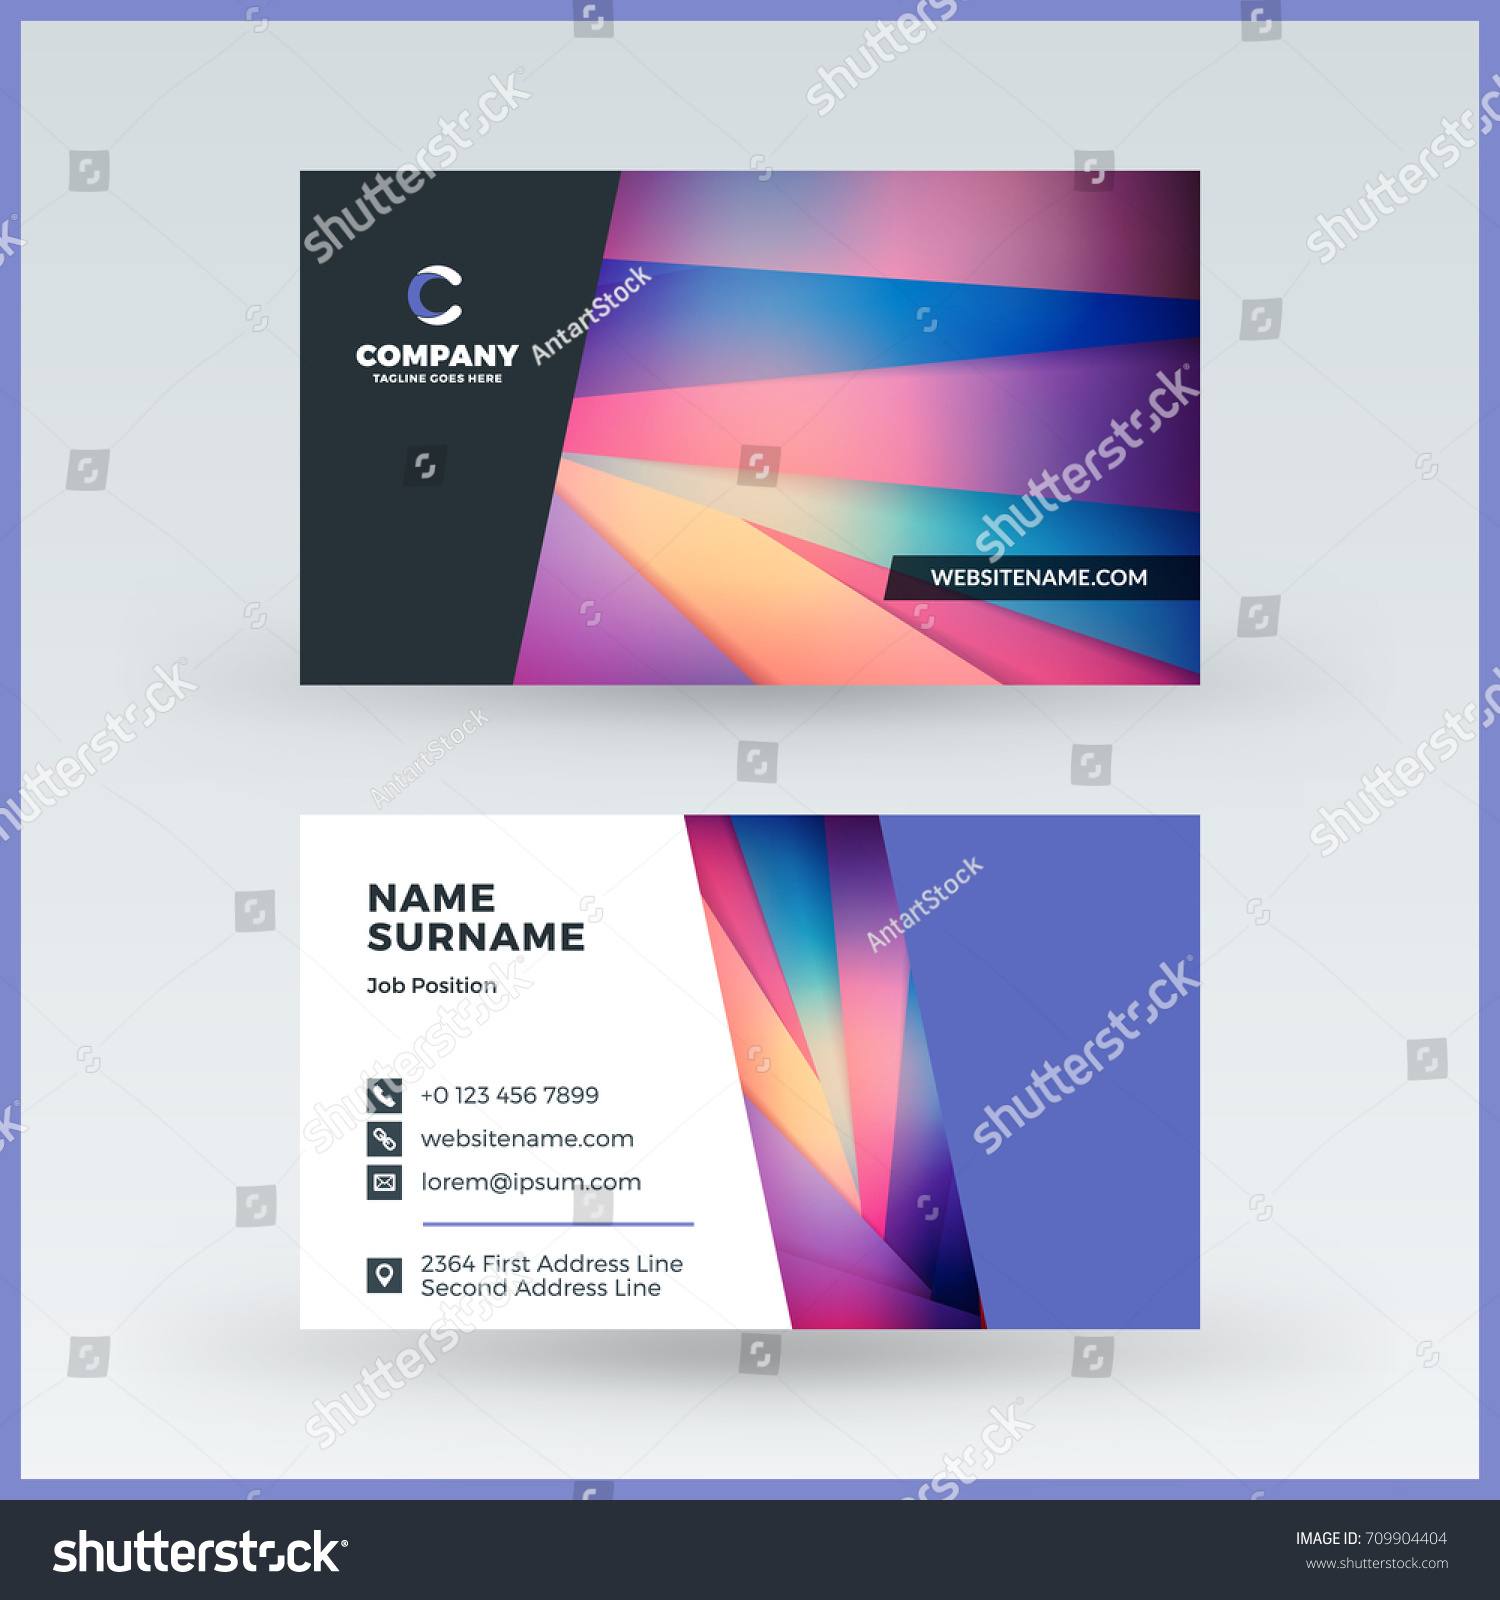 Free CSS  2727 Free Website Templates CSS Templates and